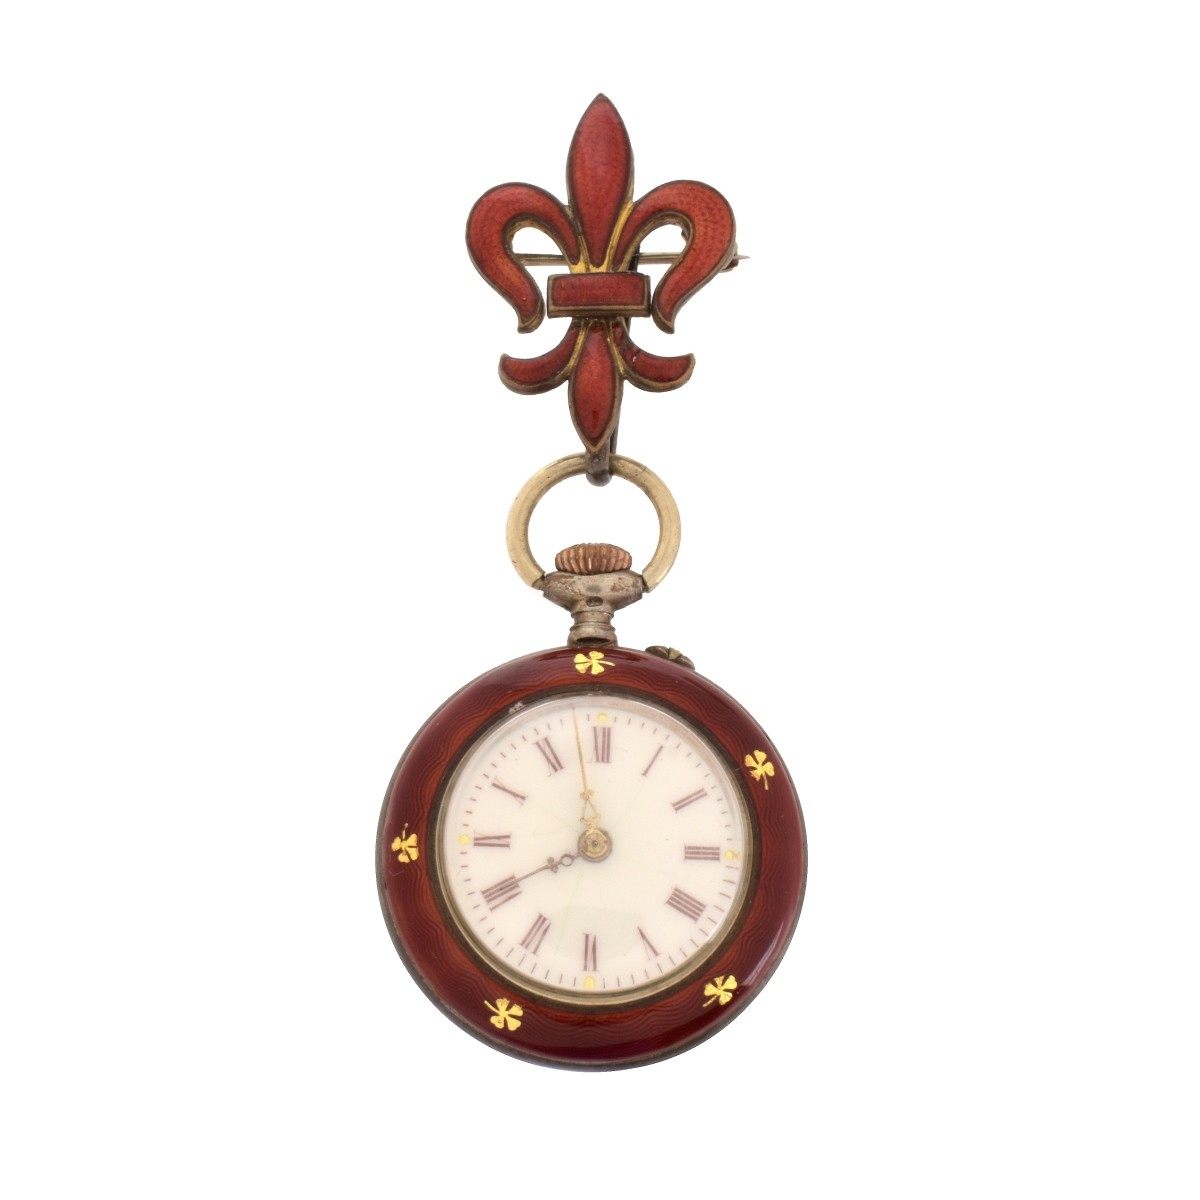 K&L Swiss Enamel Pocket Watch